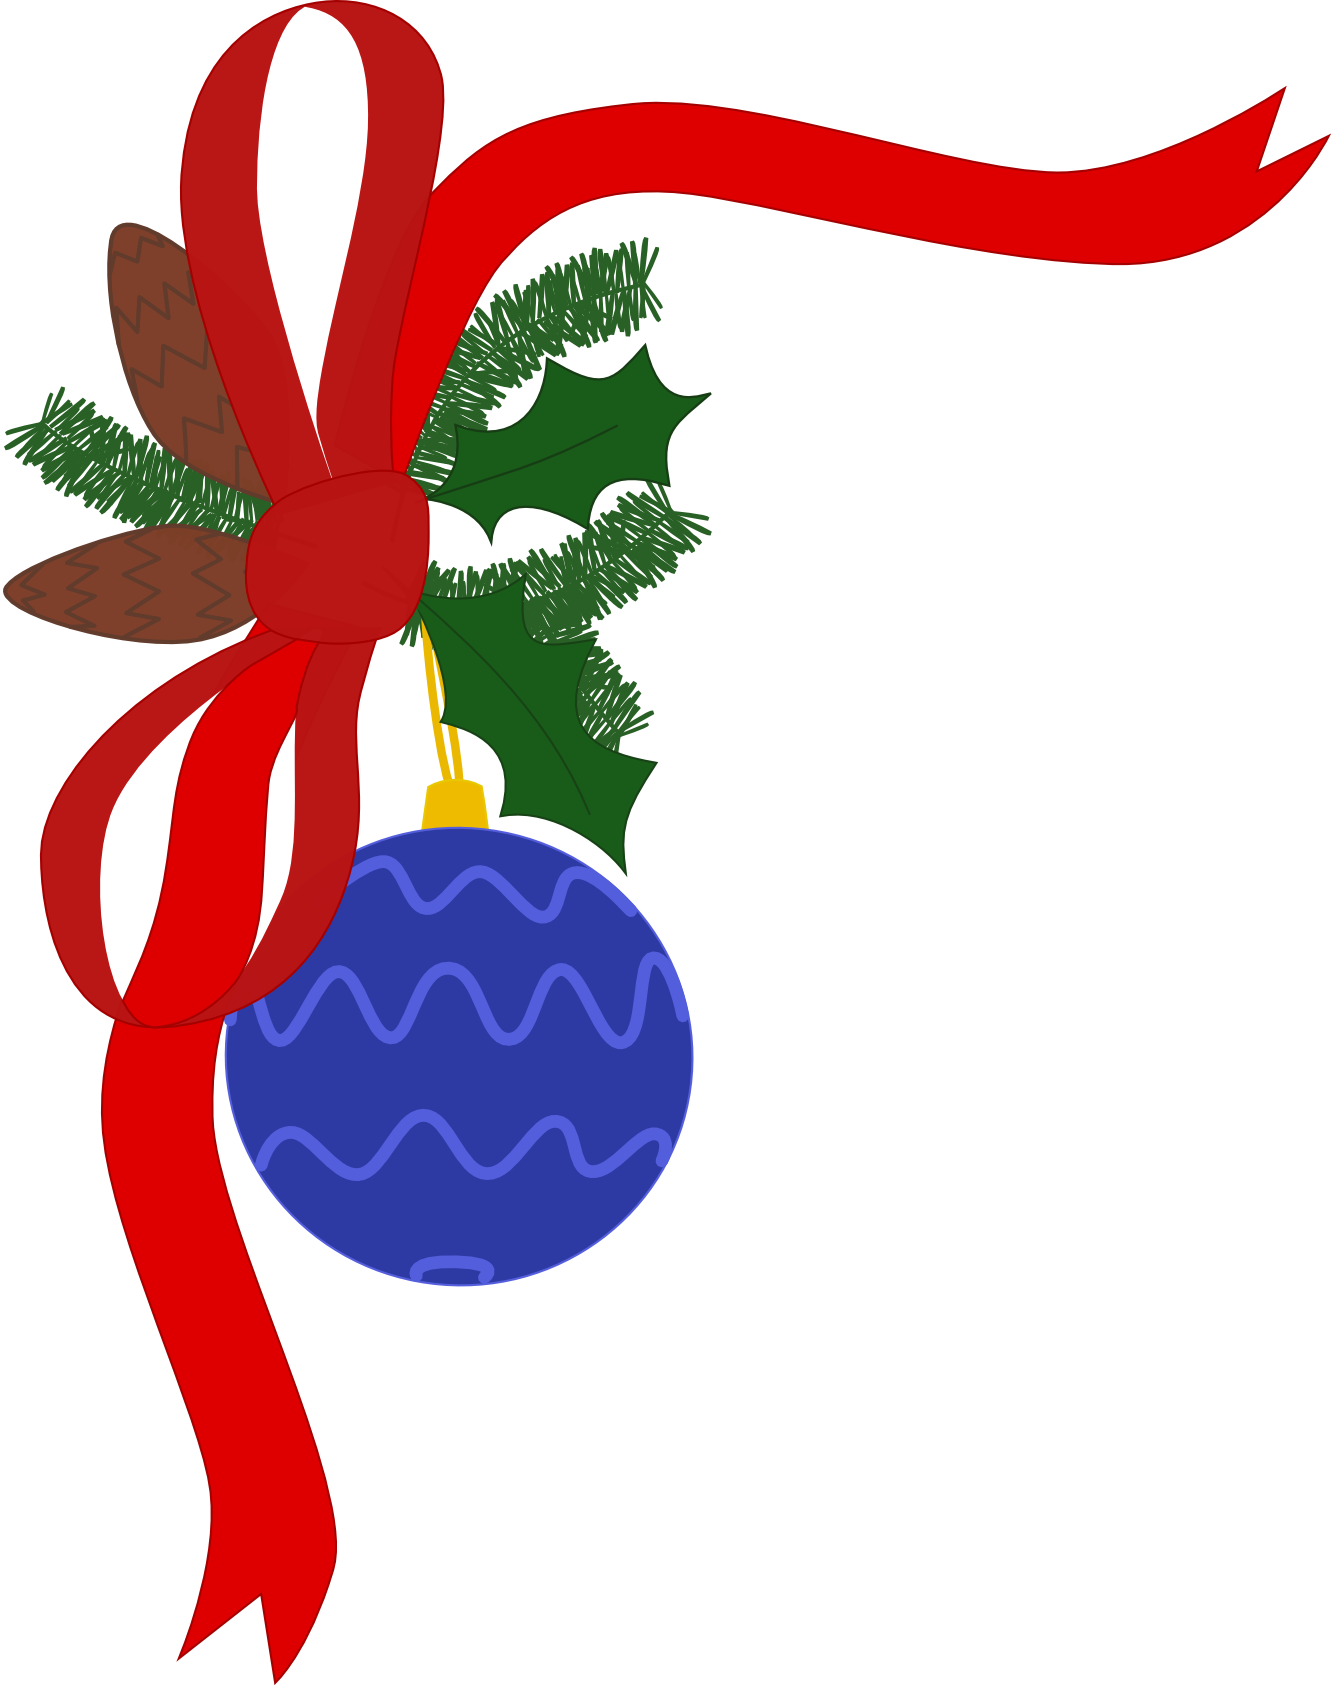 Christmas decorations download clip. Free holiday potluck clipart